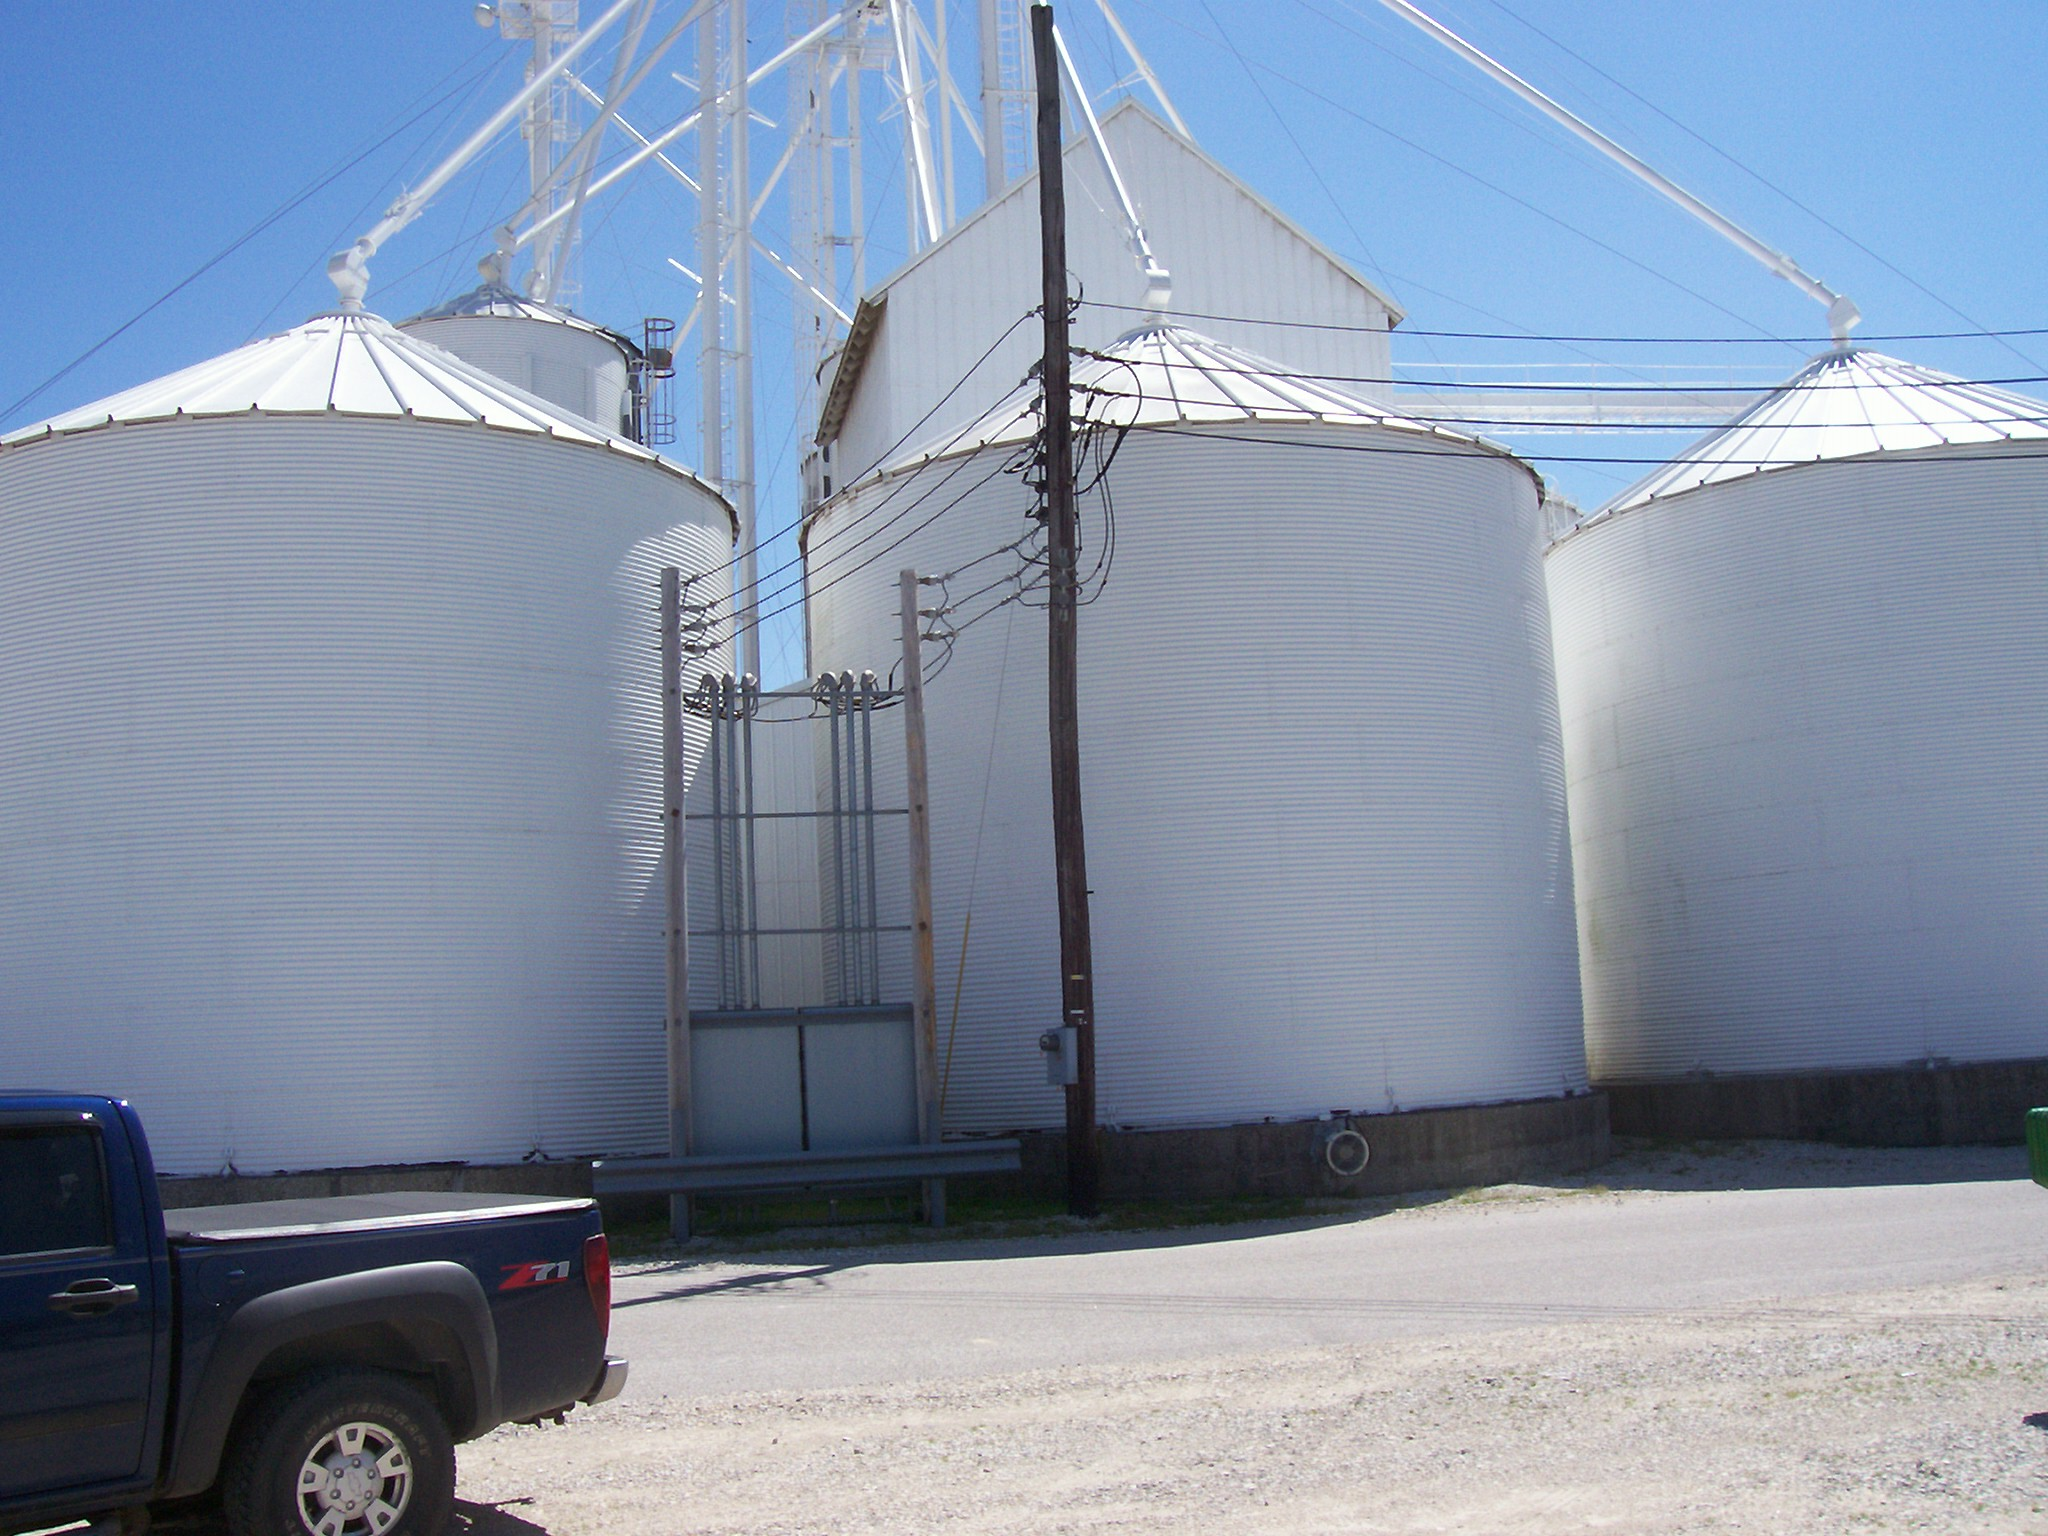 CJC painting equipment and agriculture white bins